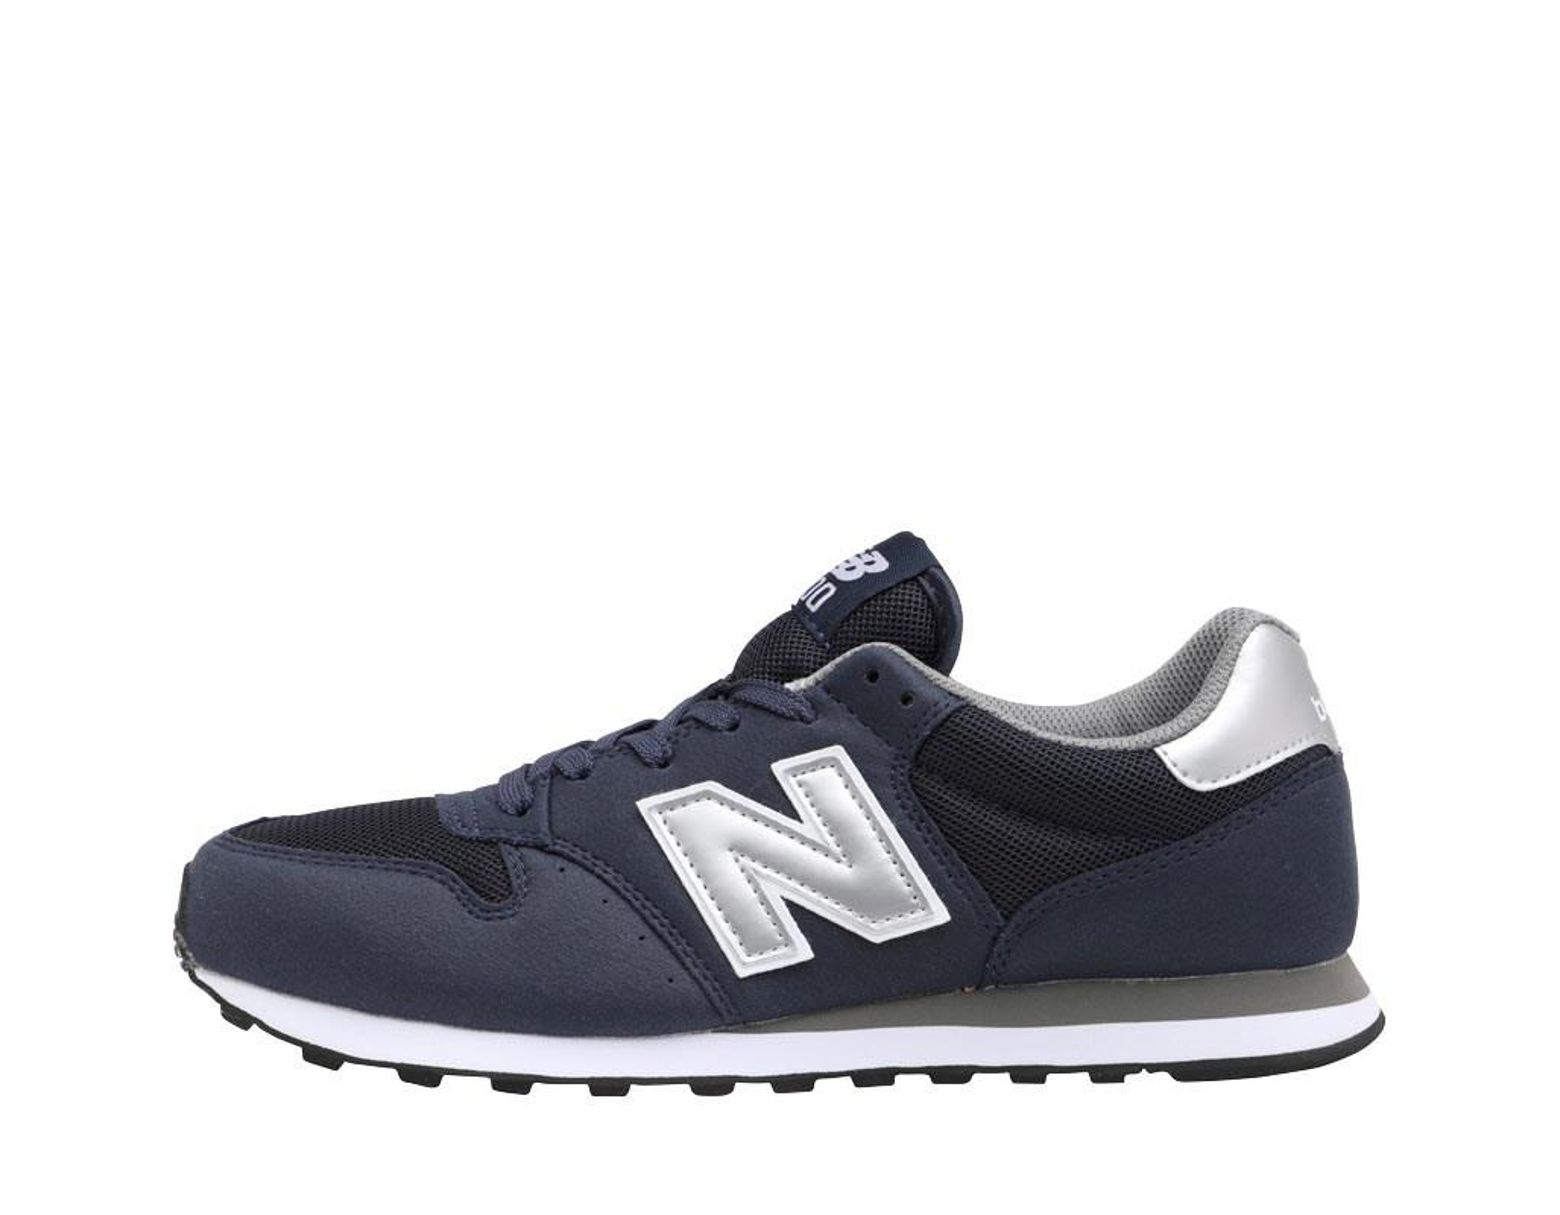 b8be46775e495 New Balance 500 Trainers Navy in Blue for Men - Lyst